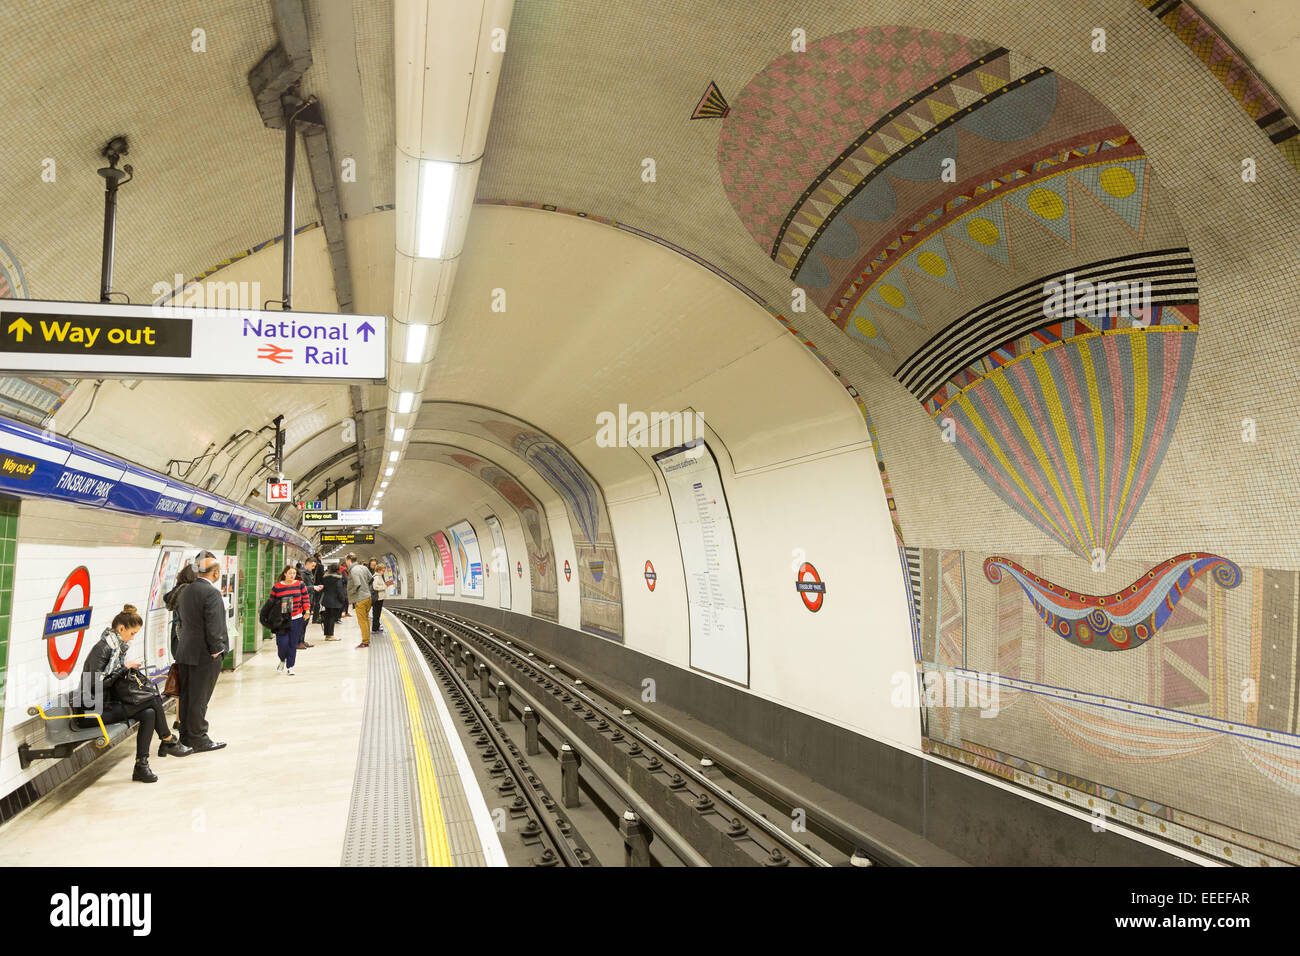 Southbound Piccadilly line piattaforme a Finsbury Park Immagini Stock